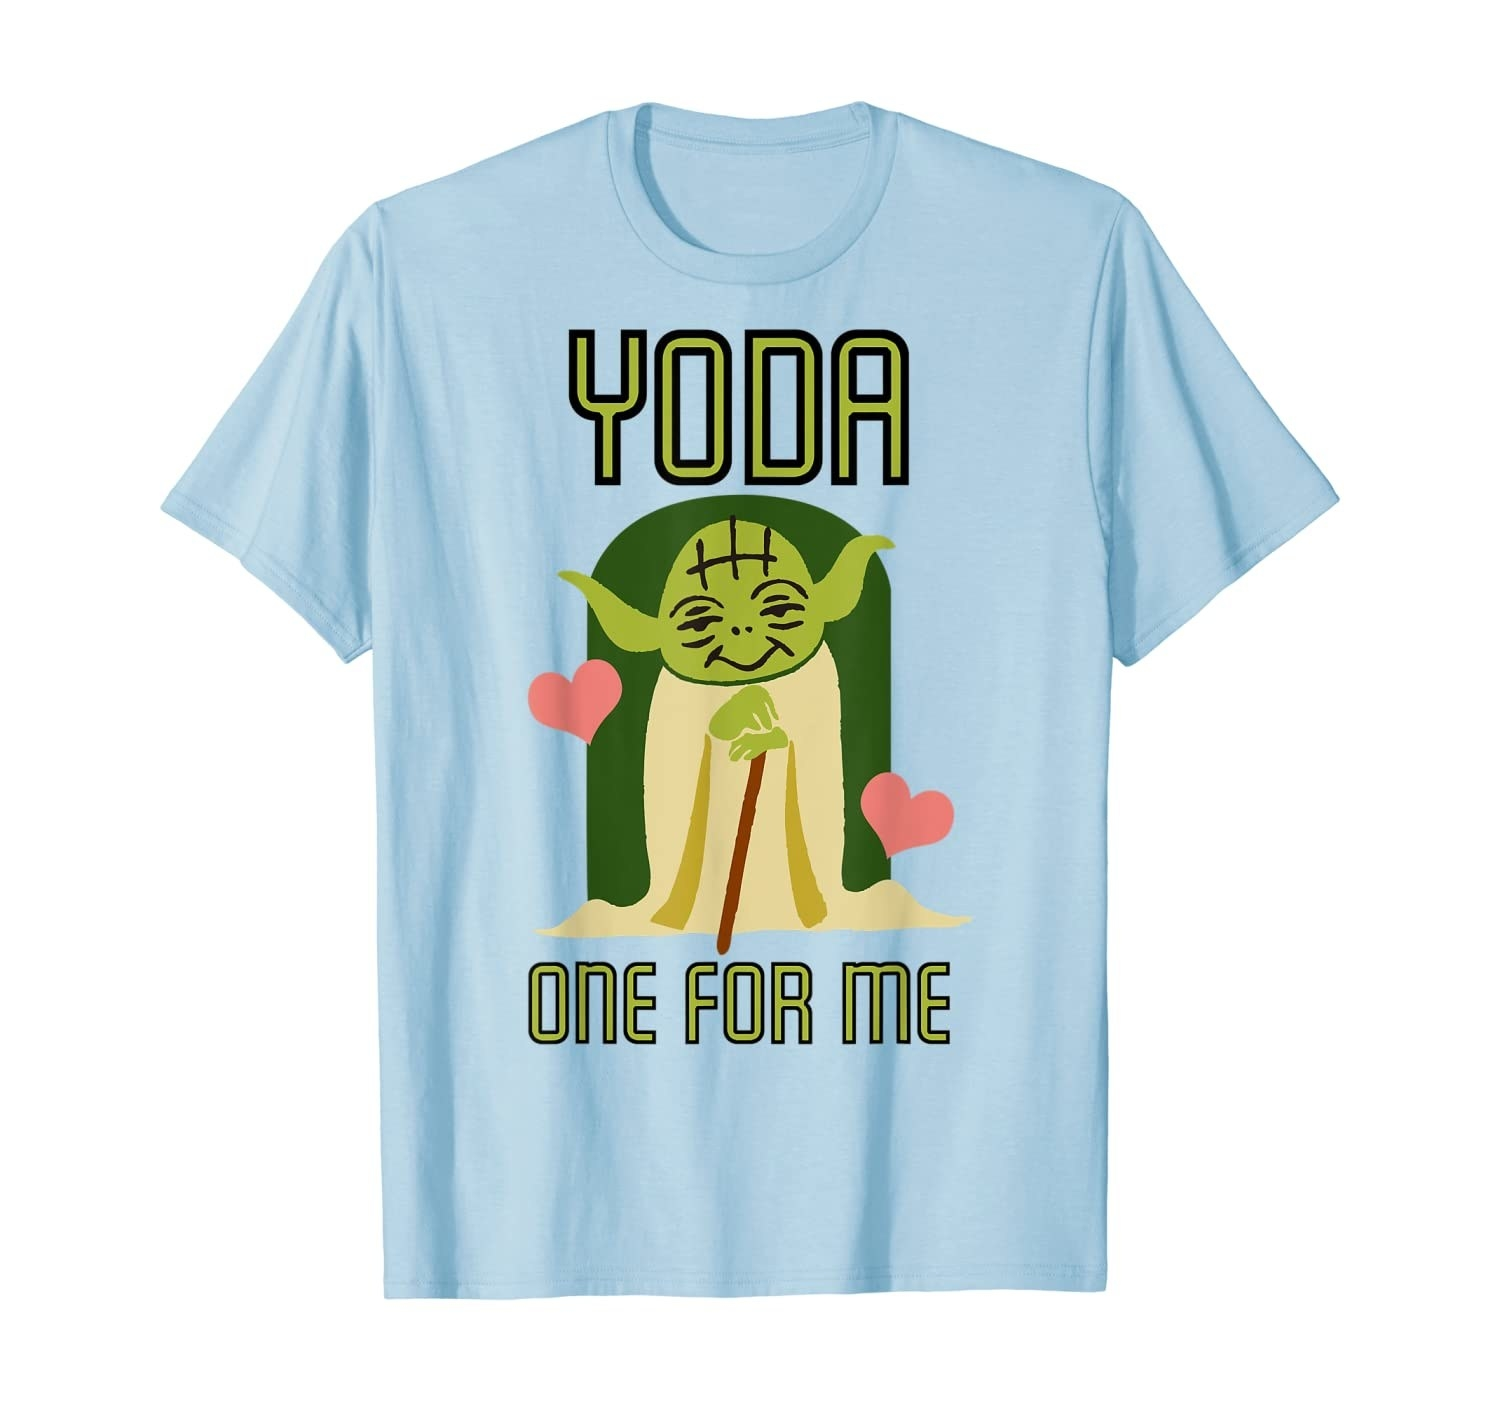 "The blue shirt which has a Yoda illustration and says ""Yoda one for me"""